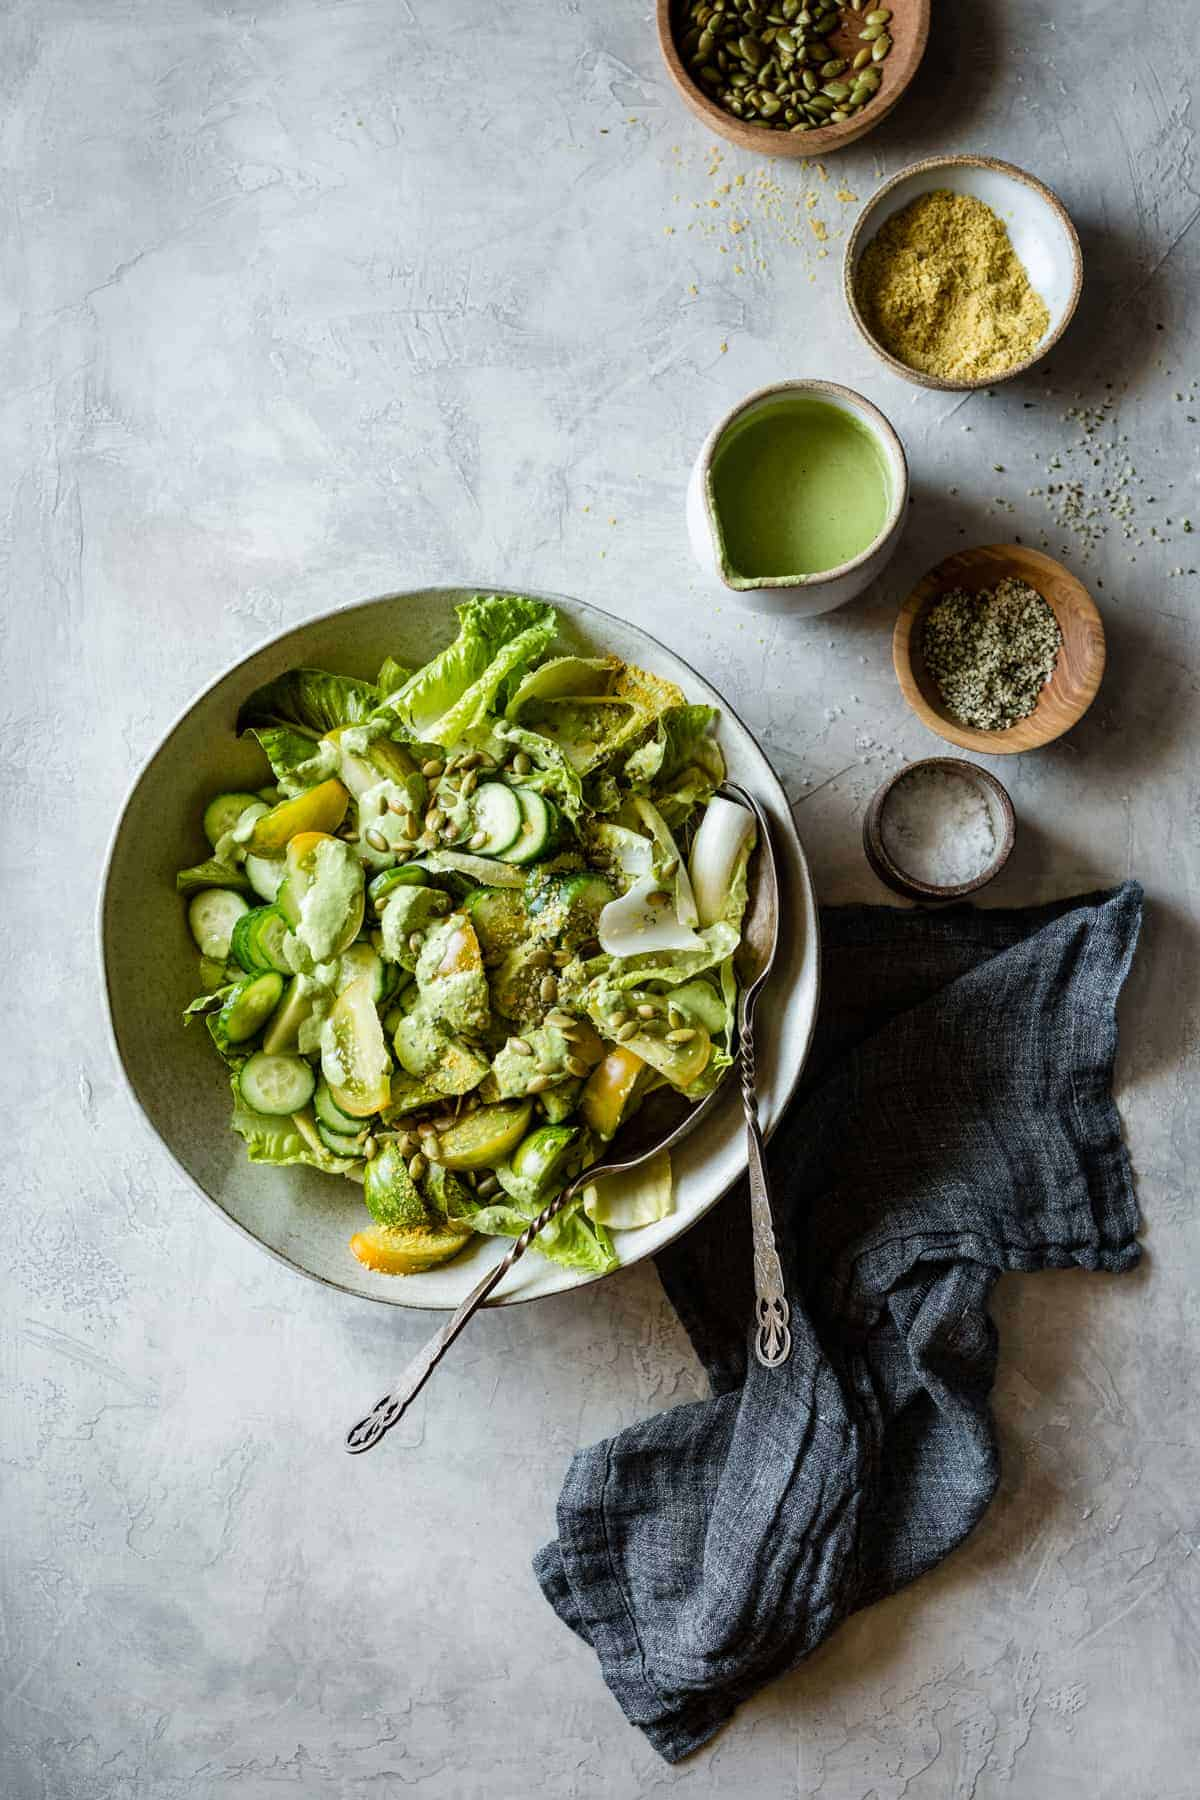 delicious creamy cashew green goddess dressing on a salad